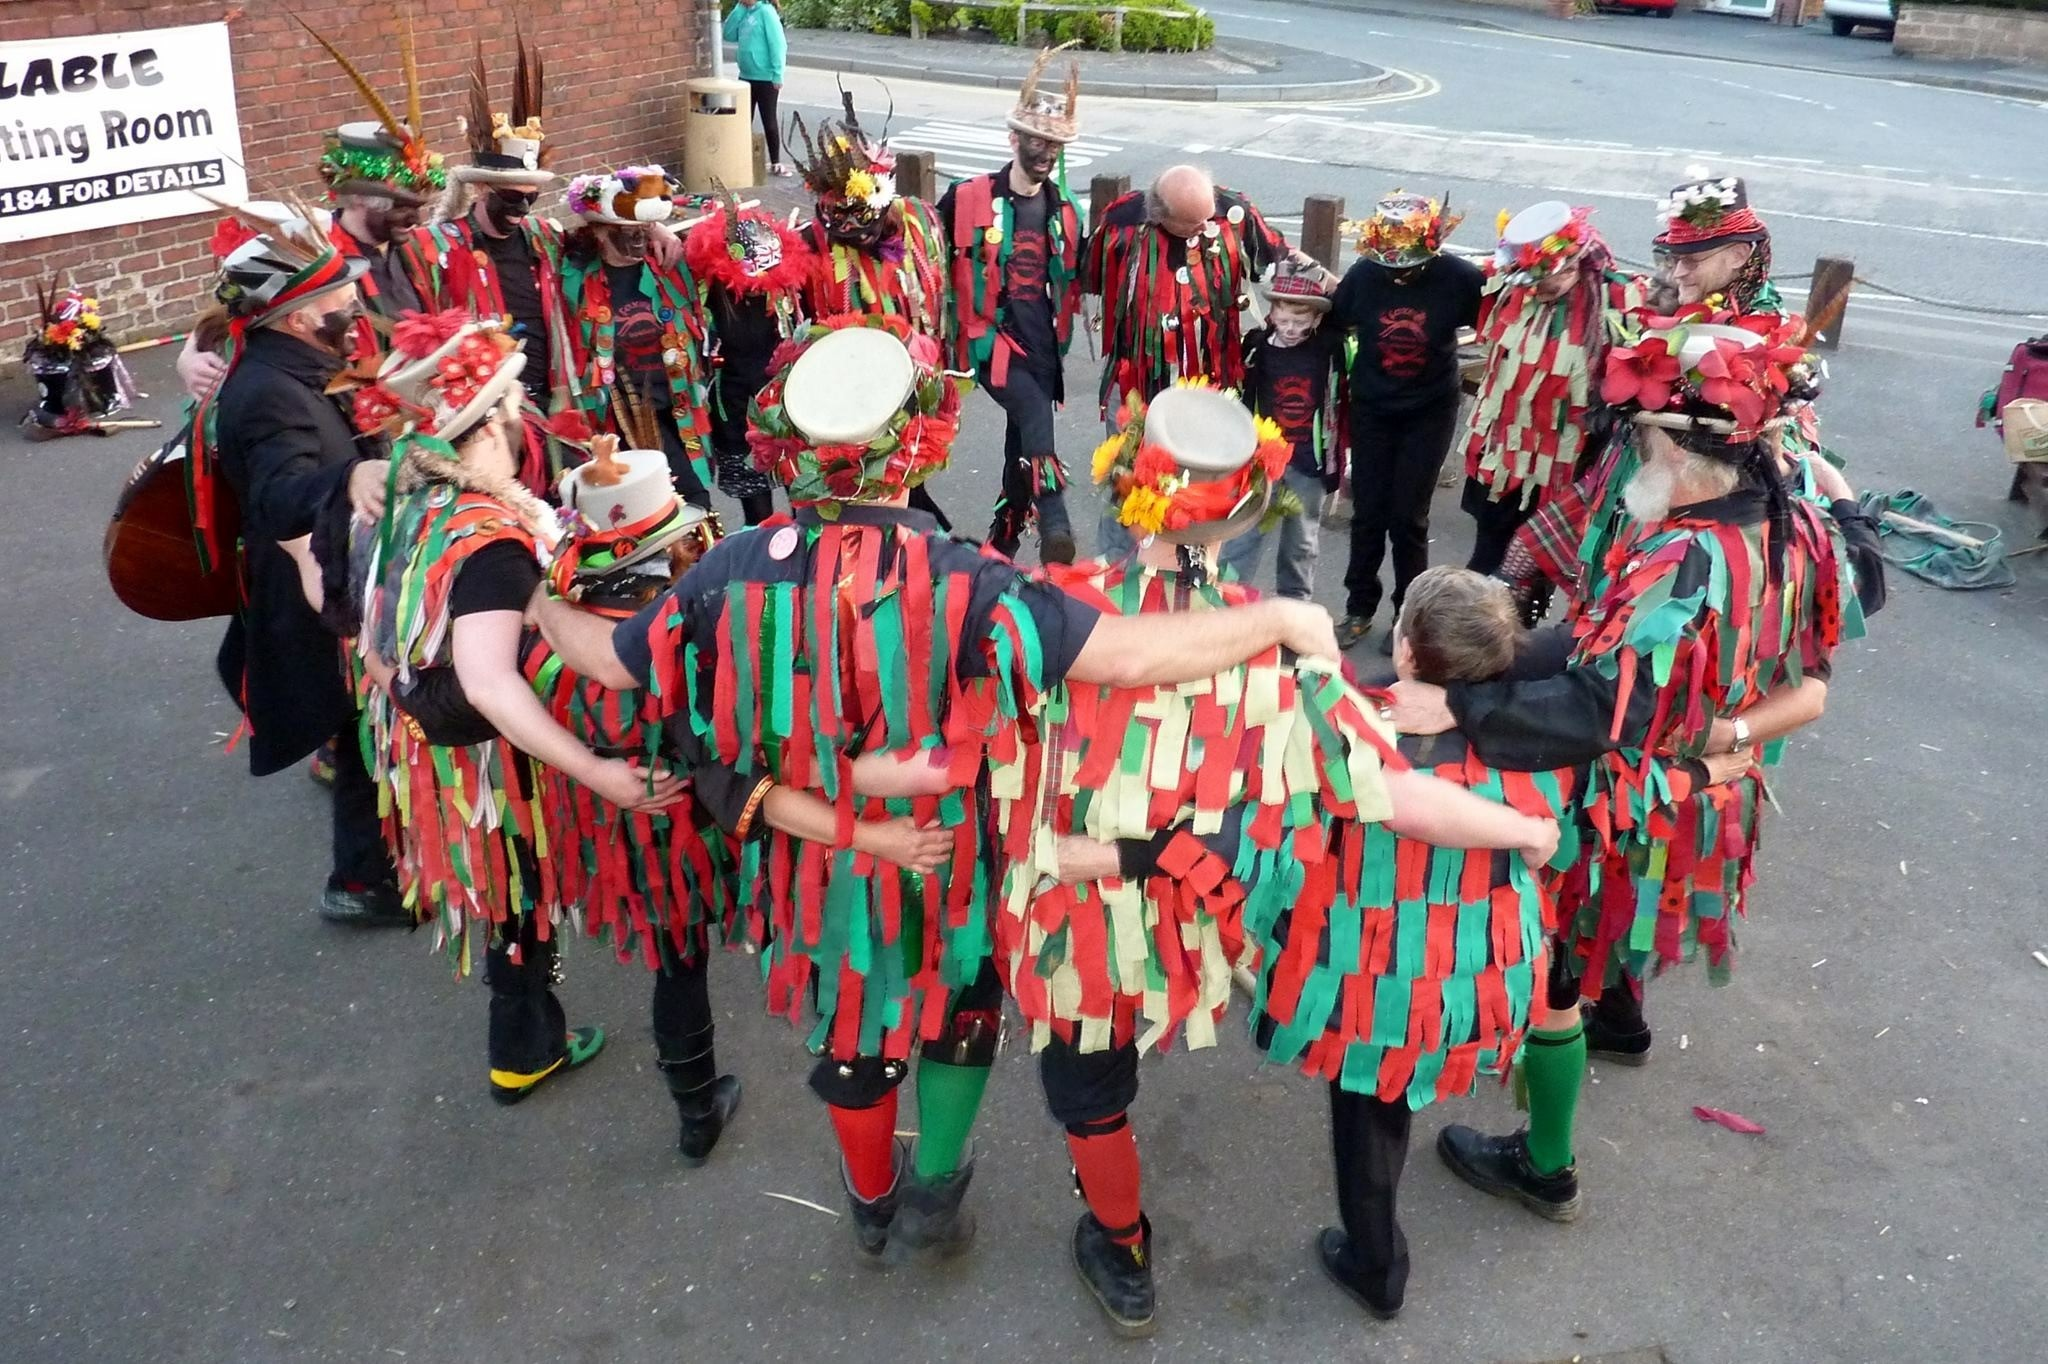 Fox's Morris will perform in Wolverley and Cookley pubs